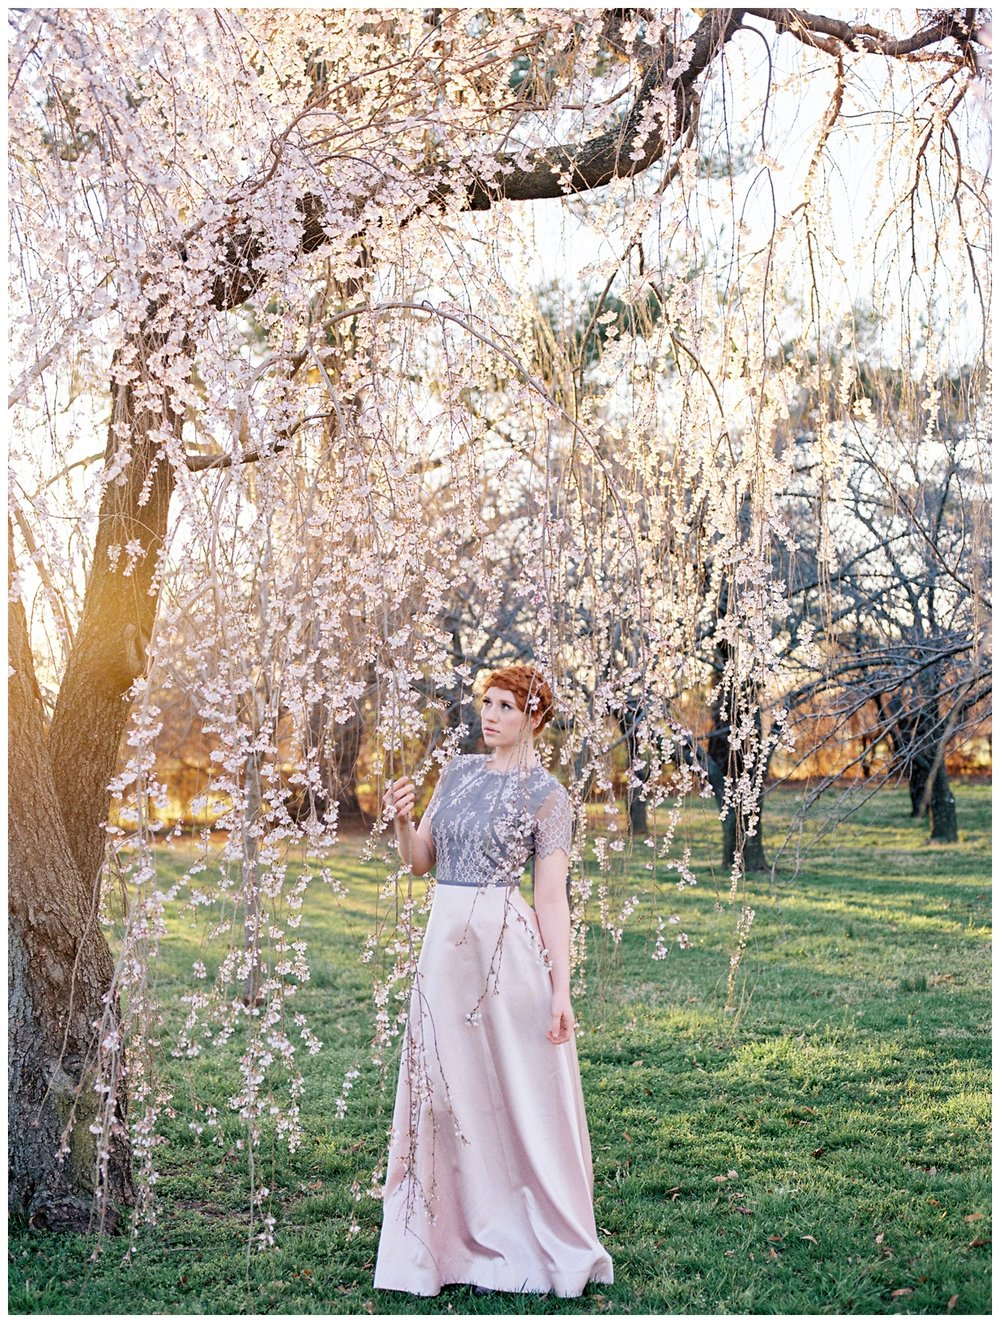 washington dc spring cherry blossom bridal inspiration session by fine art wedding photographer Lissa Ryan Photography